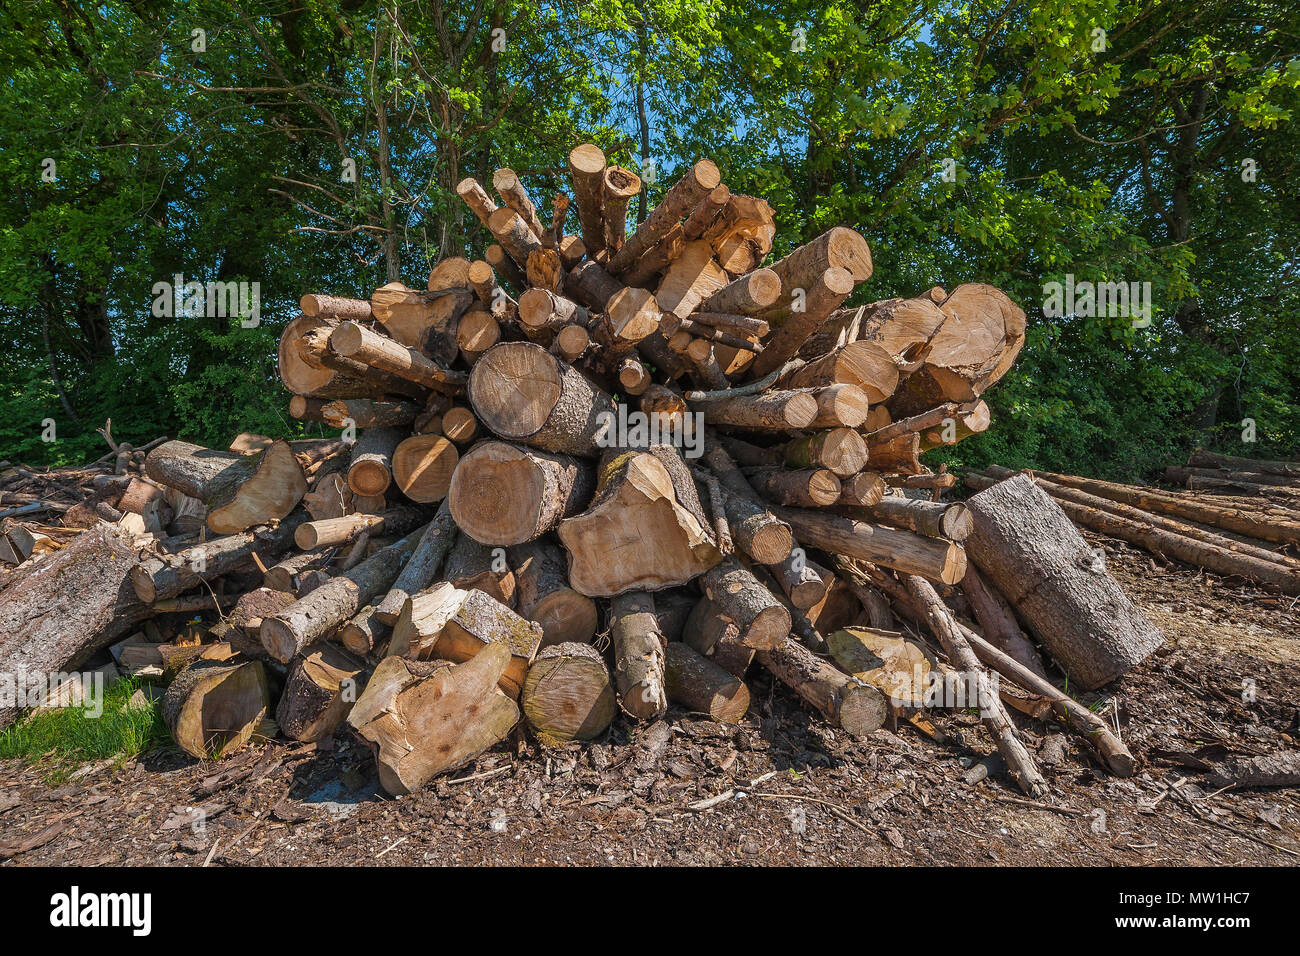 Felled spruces, woodpile with stacked tree trunks, Upper Bavaria, Bavaria, Germany - Stock Image